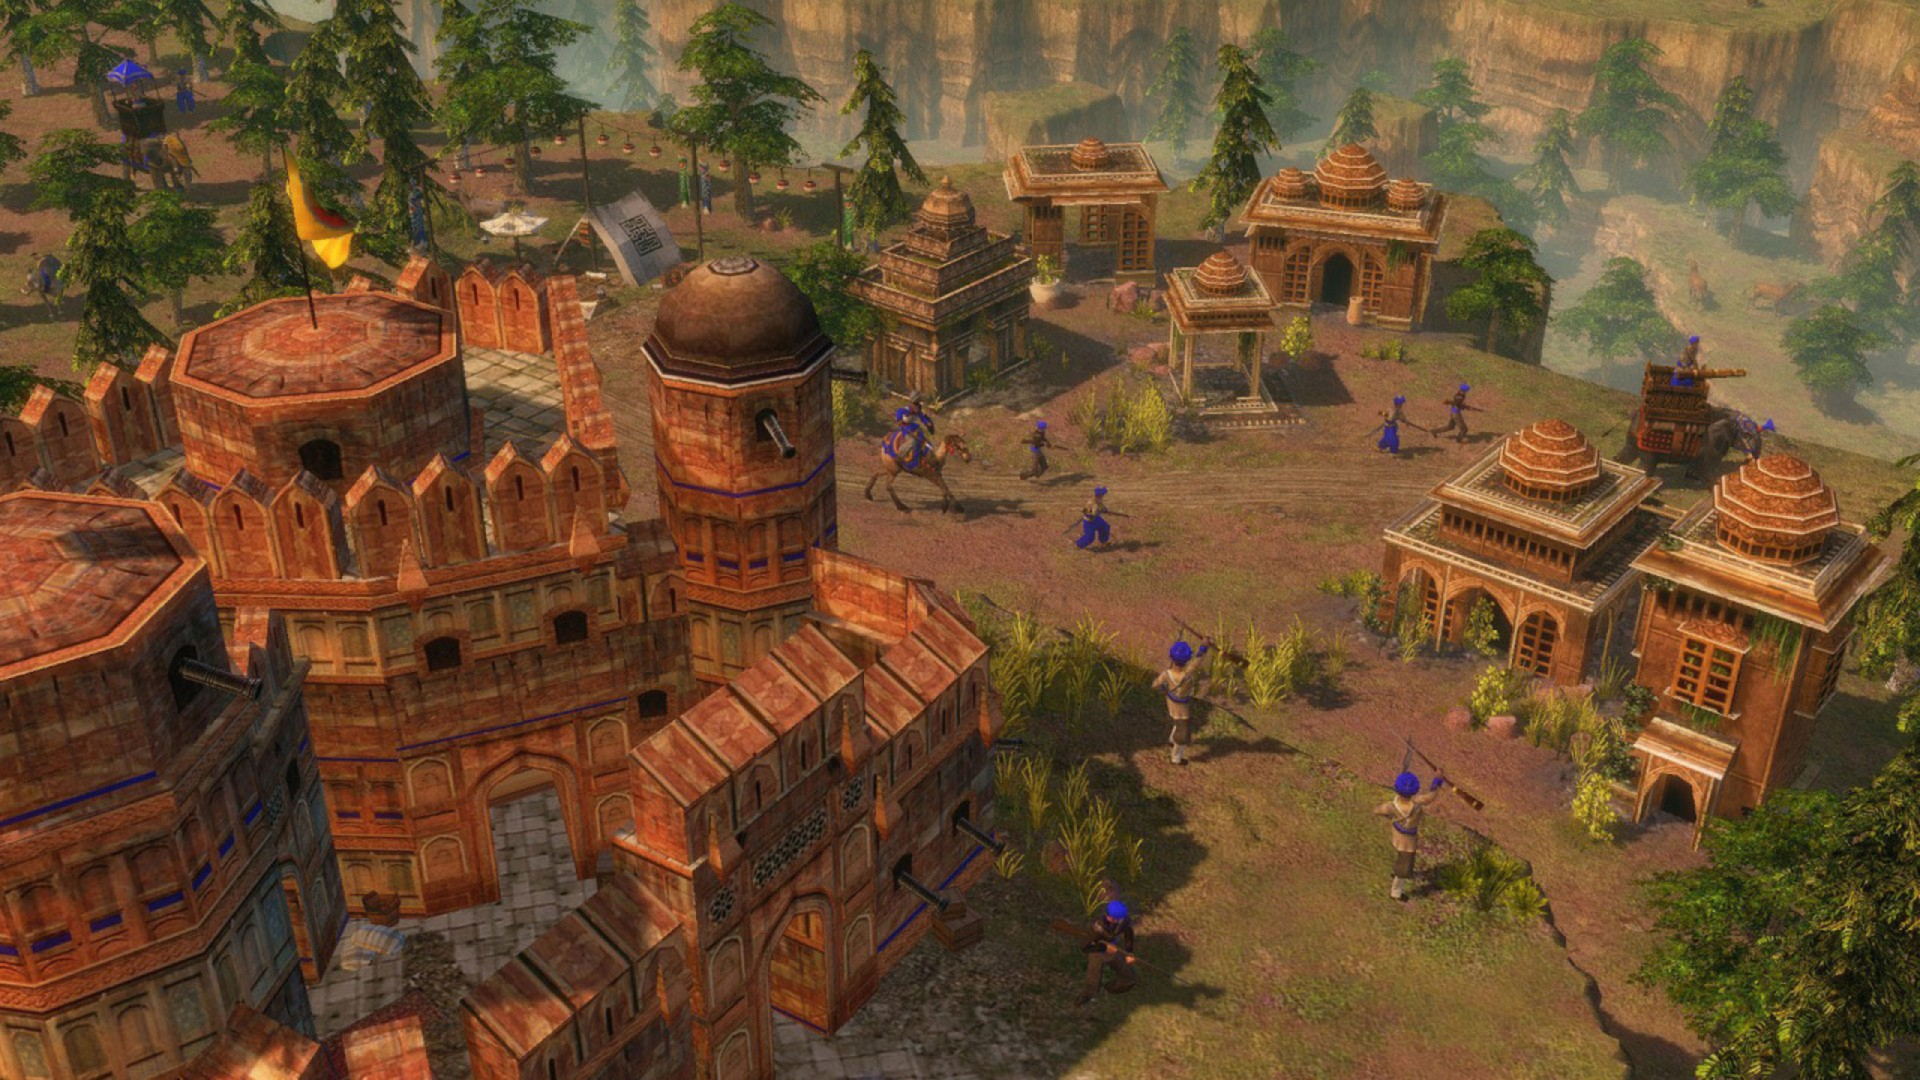 Save 75% On Age Of Empires® III: Complete Collection On Steam